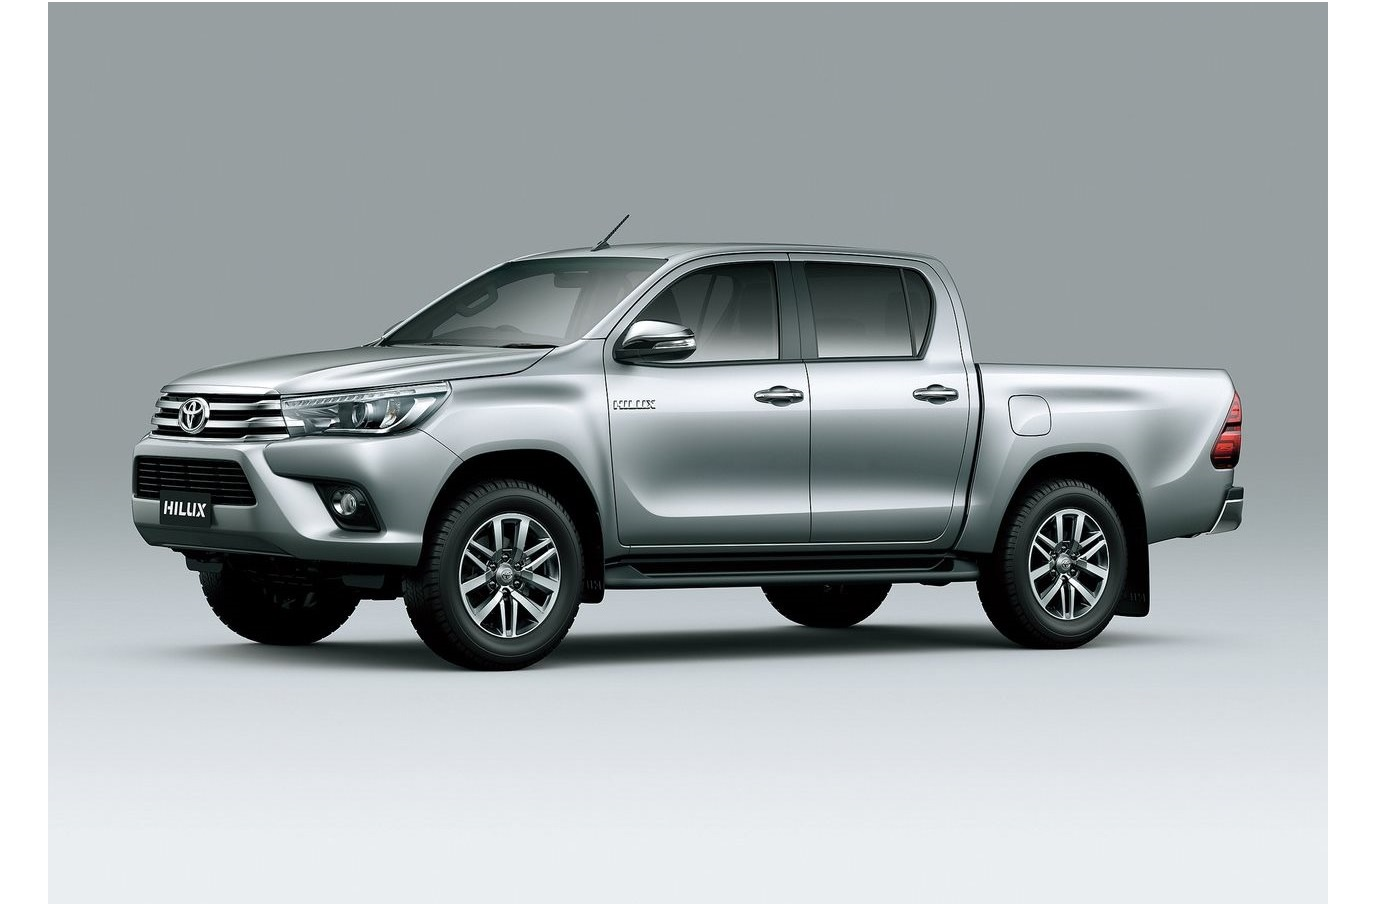 Toyota Hilux Price in Saudi Arabia - New Toyota Hilux Photos and Specs |  YallaMotor